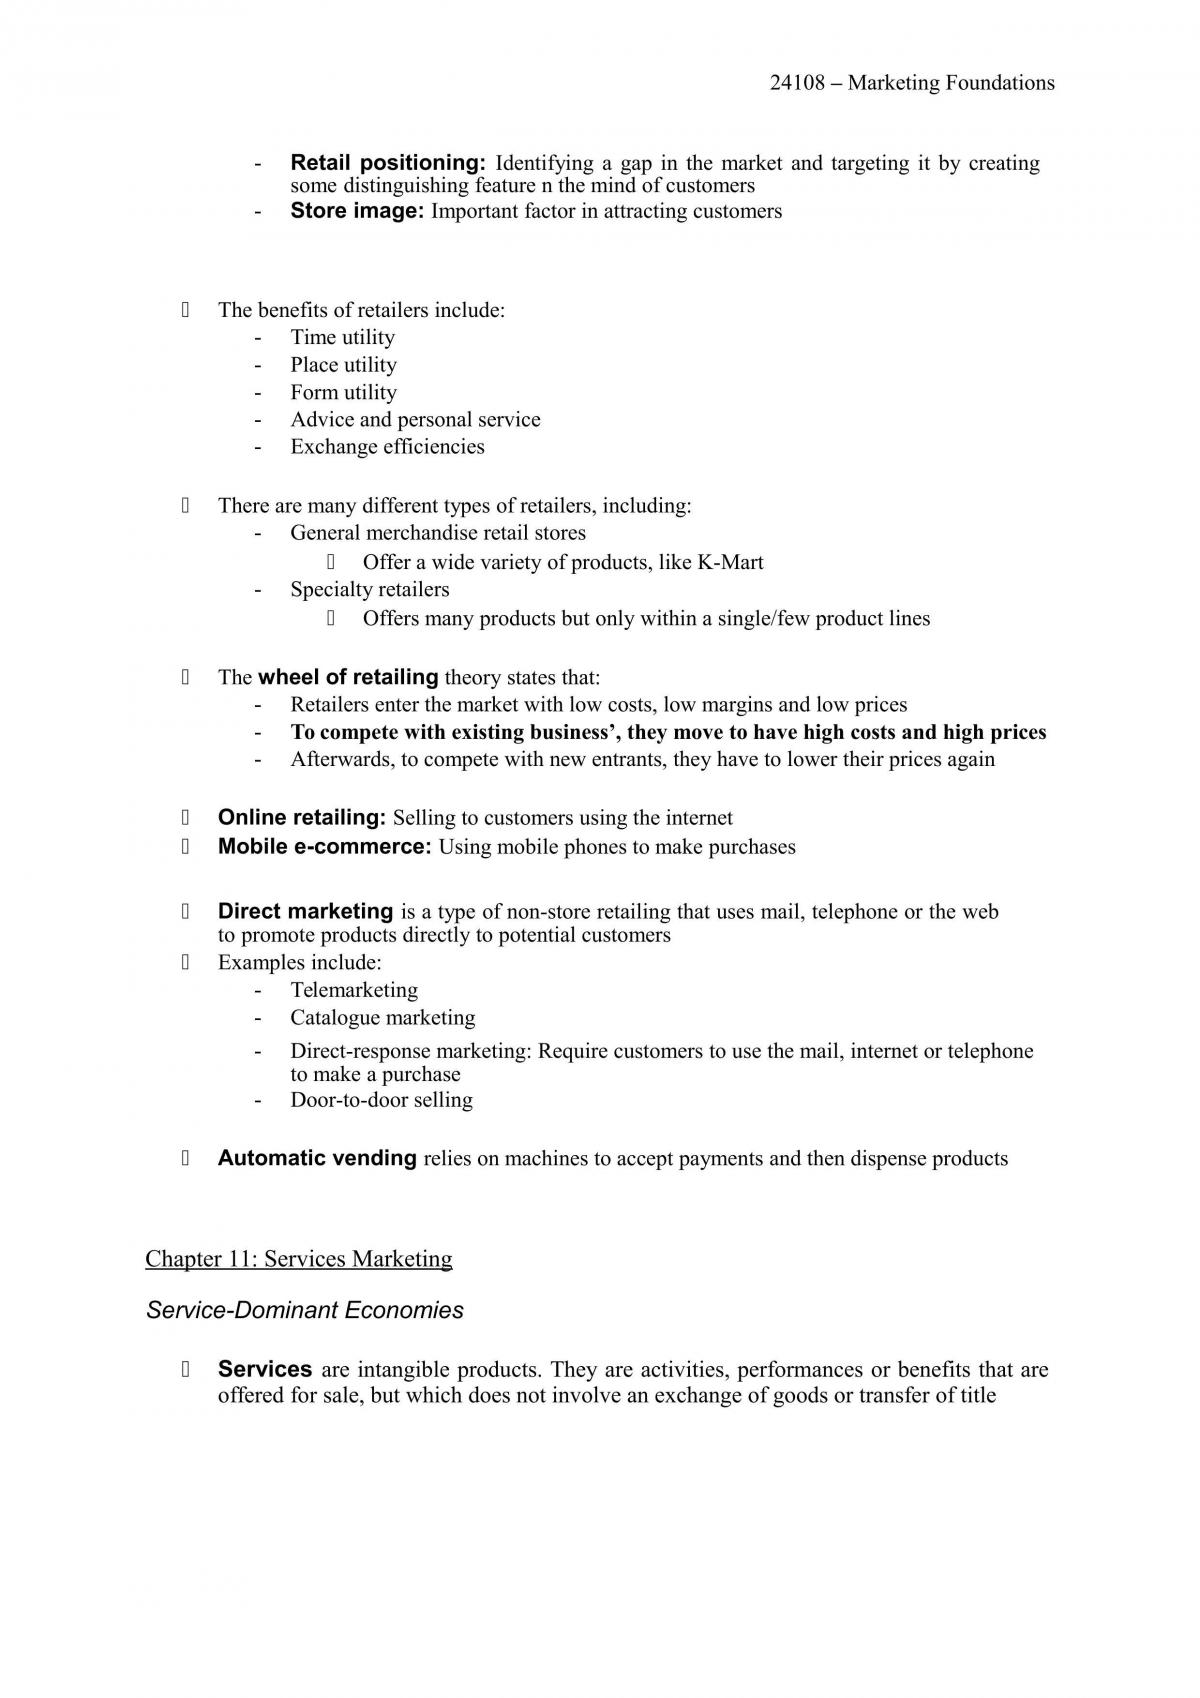 24108 Marketing Foundations - Full Semester Notes - Page 42